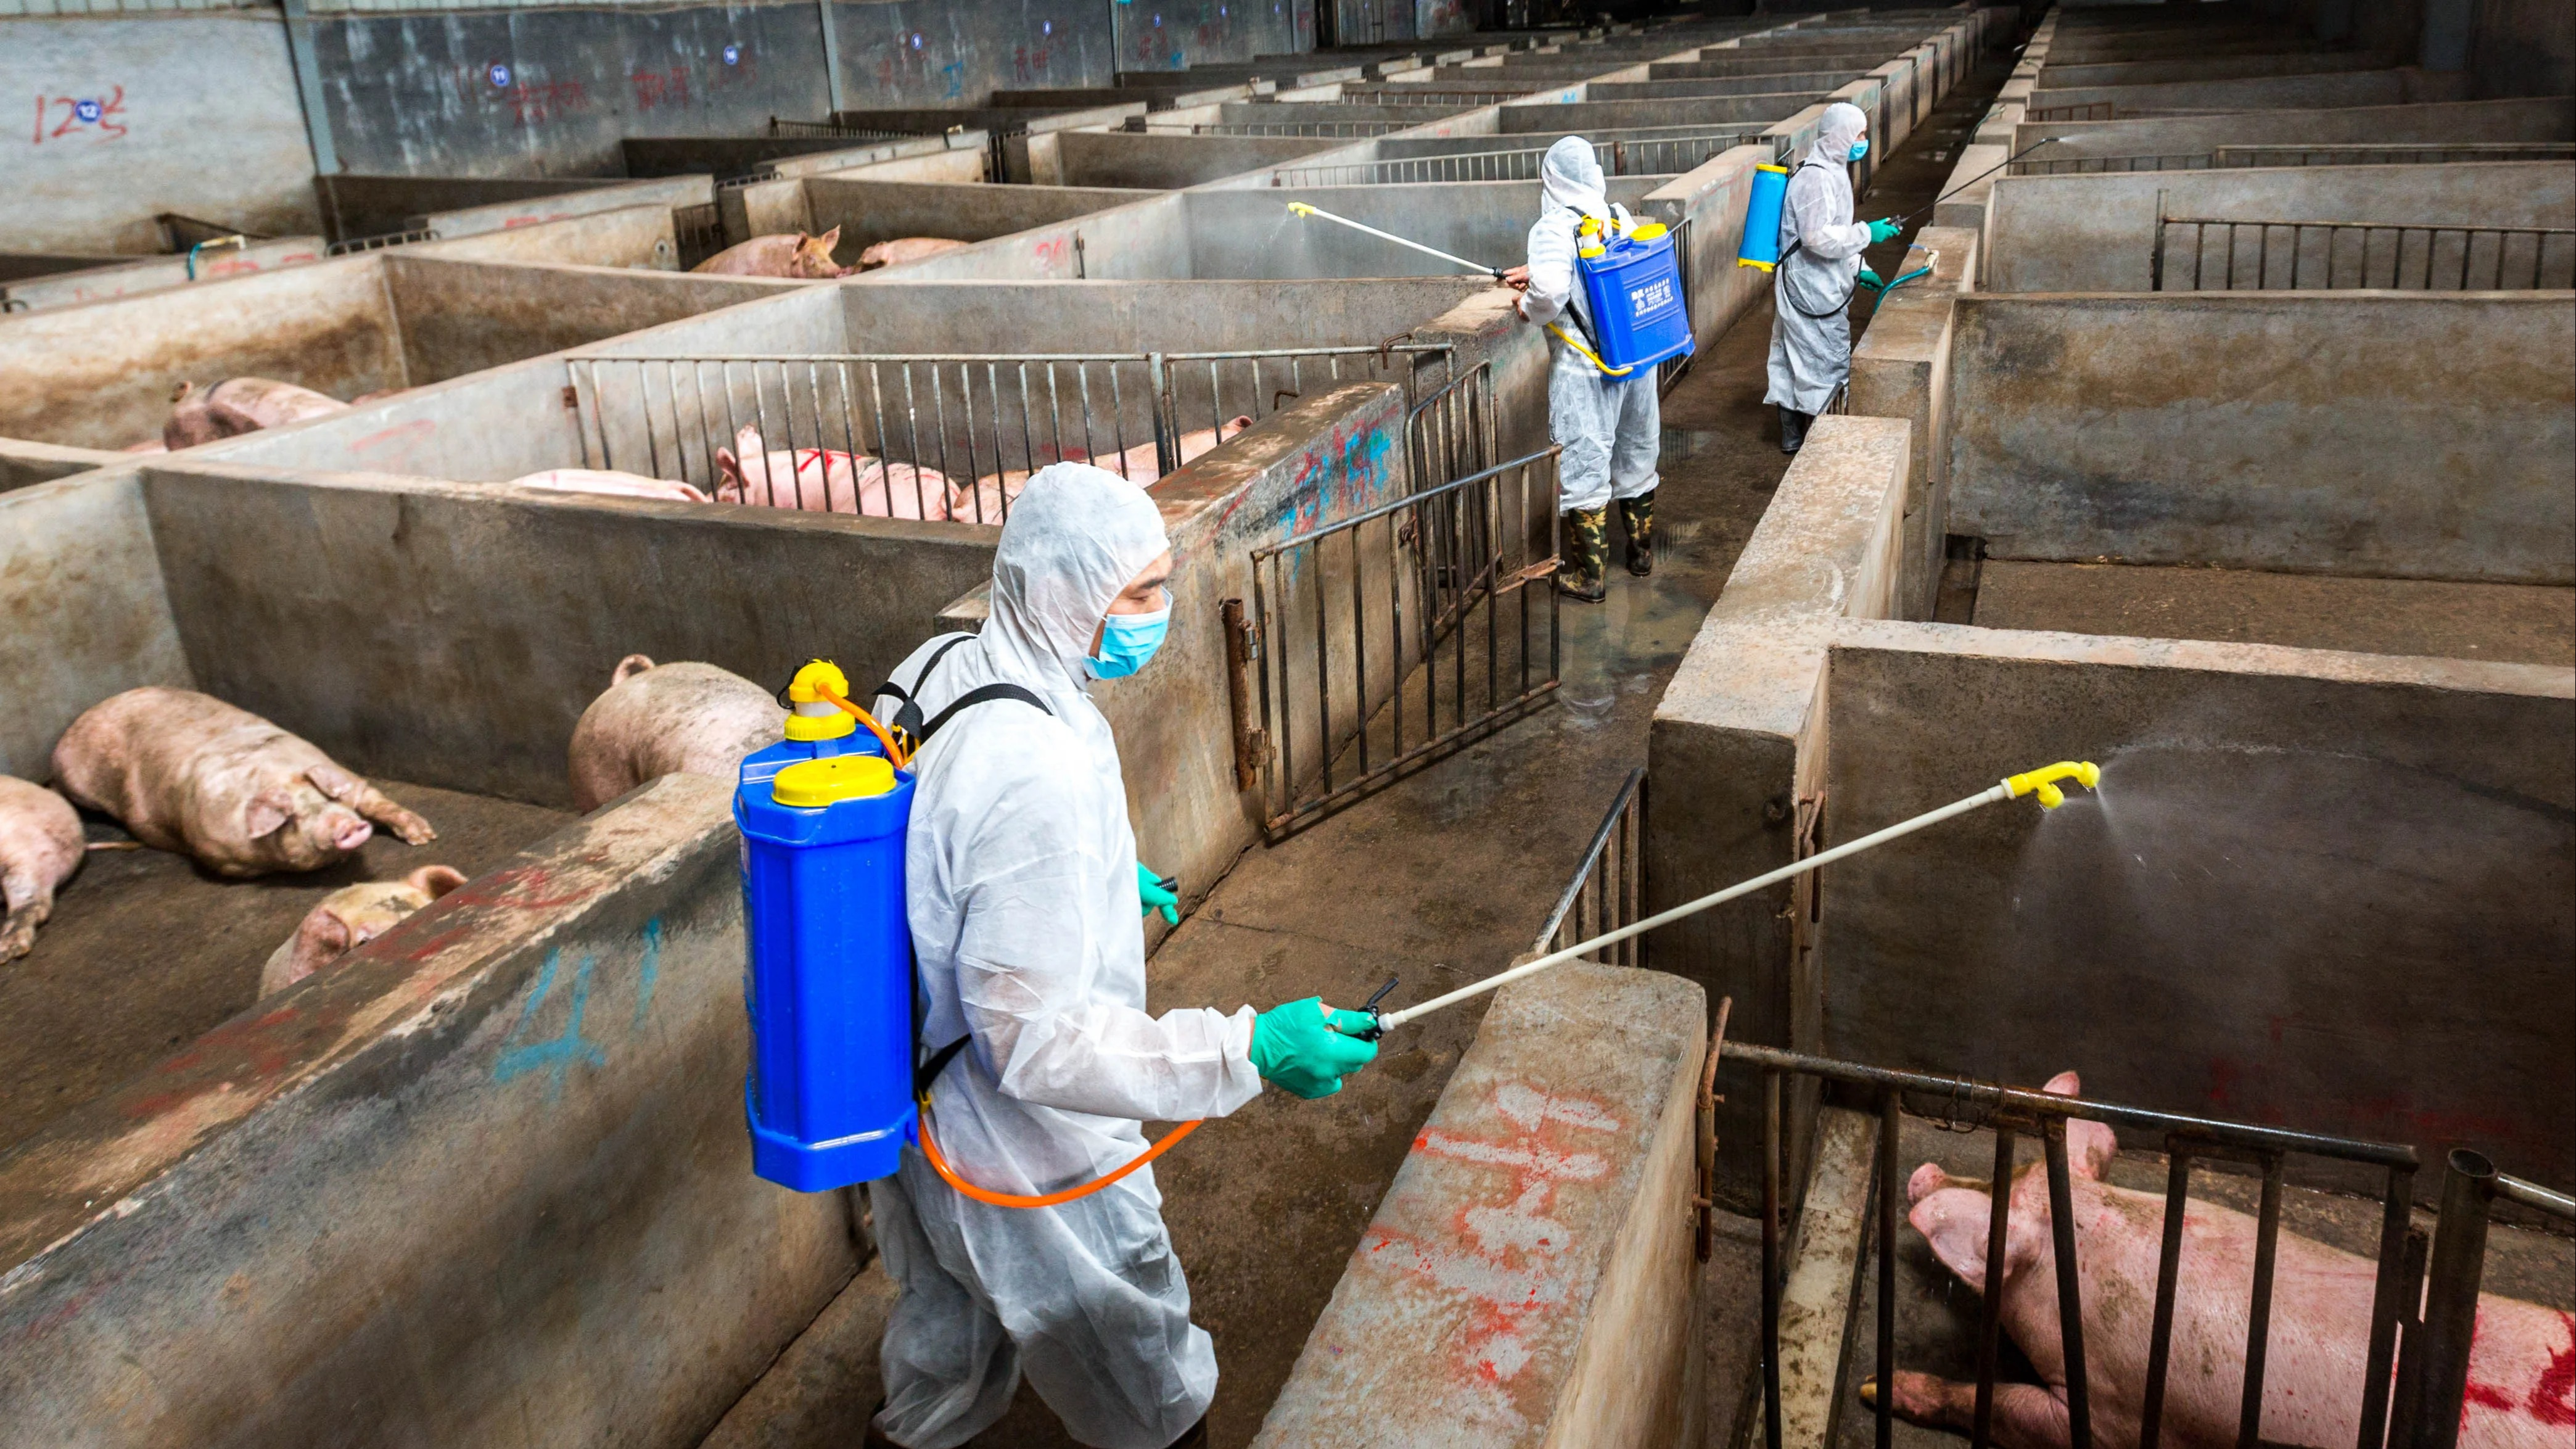 Over 3,000 pigs culled in Philippines over swine fever